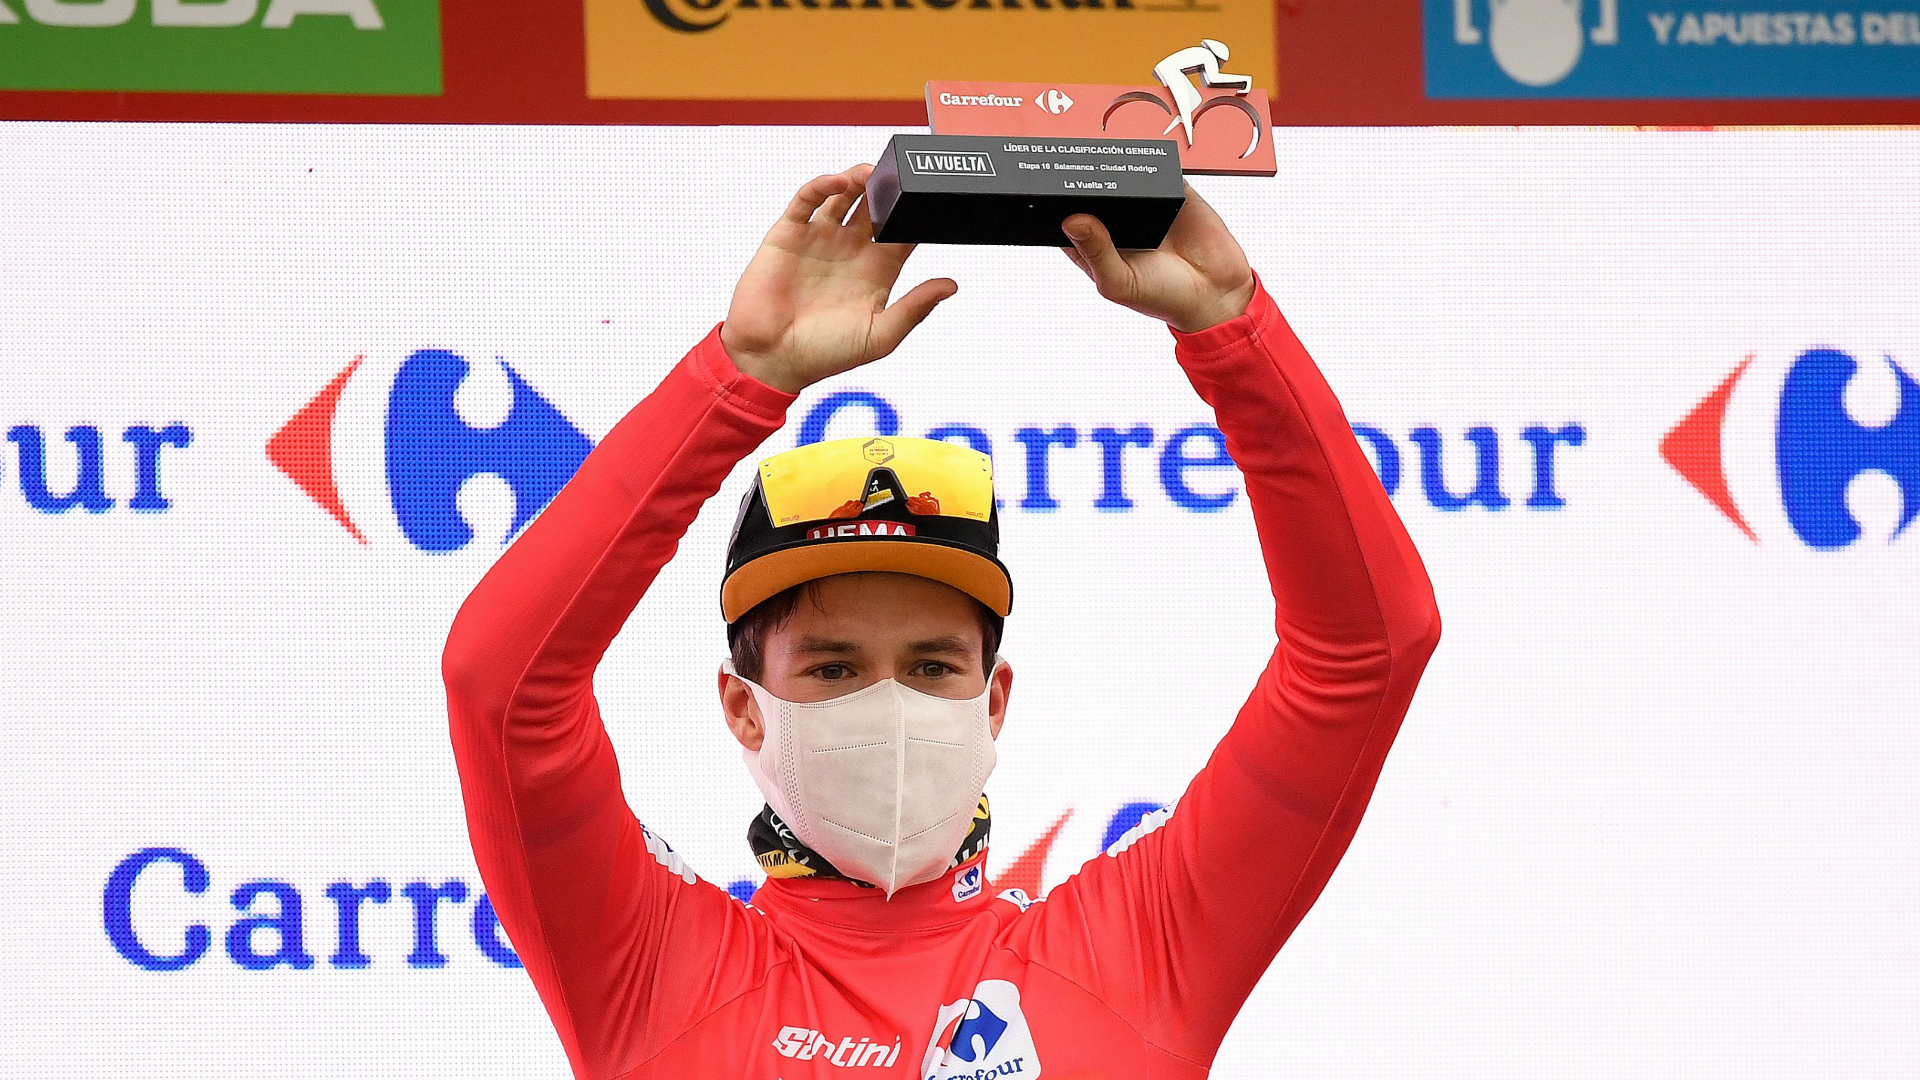 Vuelta a Espana: Roglic grips tight to red jersey going into final weekend